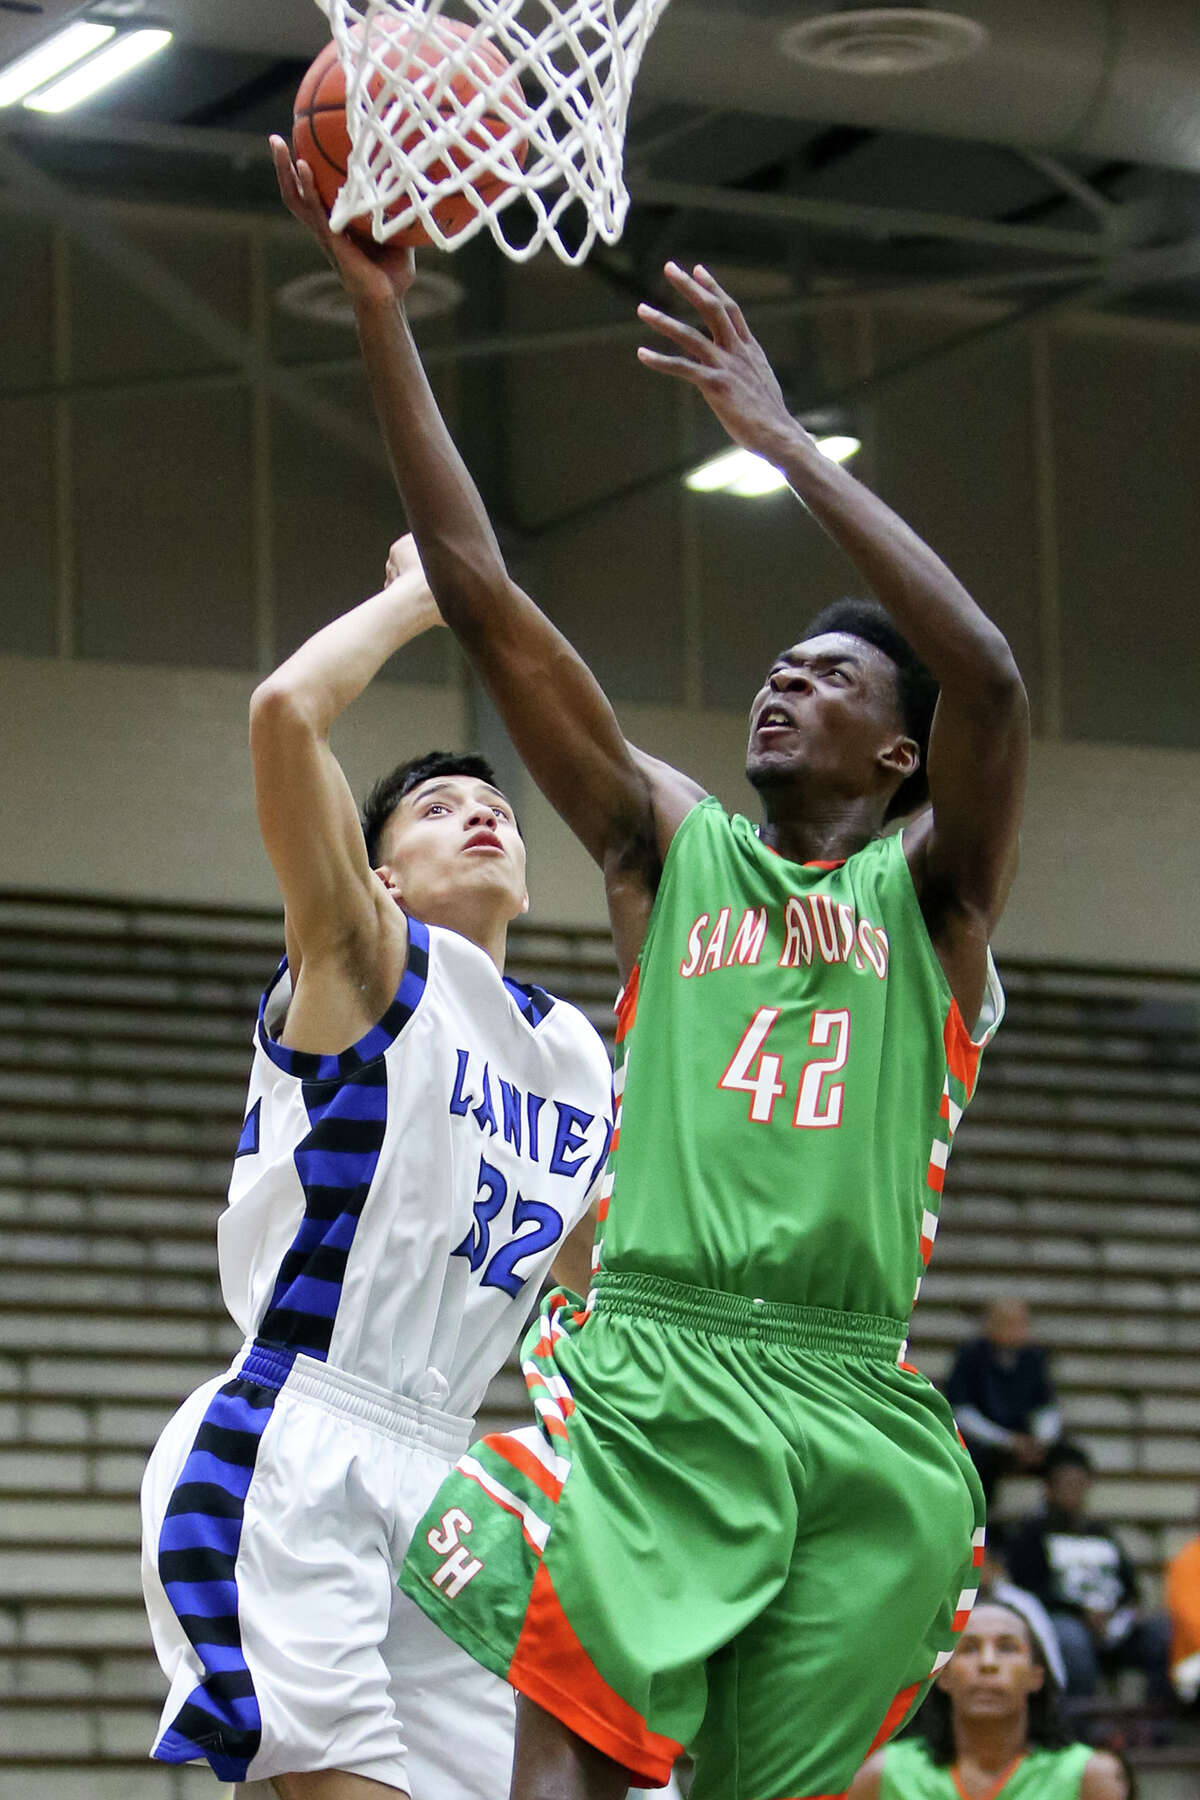 Sam Houston's Devin Allen (42) goes to the basket past Lanier's Luis Martinez (32) during the first half of their game at the Alamo Convocation Center on Friday, Feb. 13, 2015. Allen led all scorers with 20 points to help Sam Houston beat Lanier 72-60, handing the Voks their first district 28-5A loss. MARVIN PFEIFFER/ mpfeiffer@express-news.net